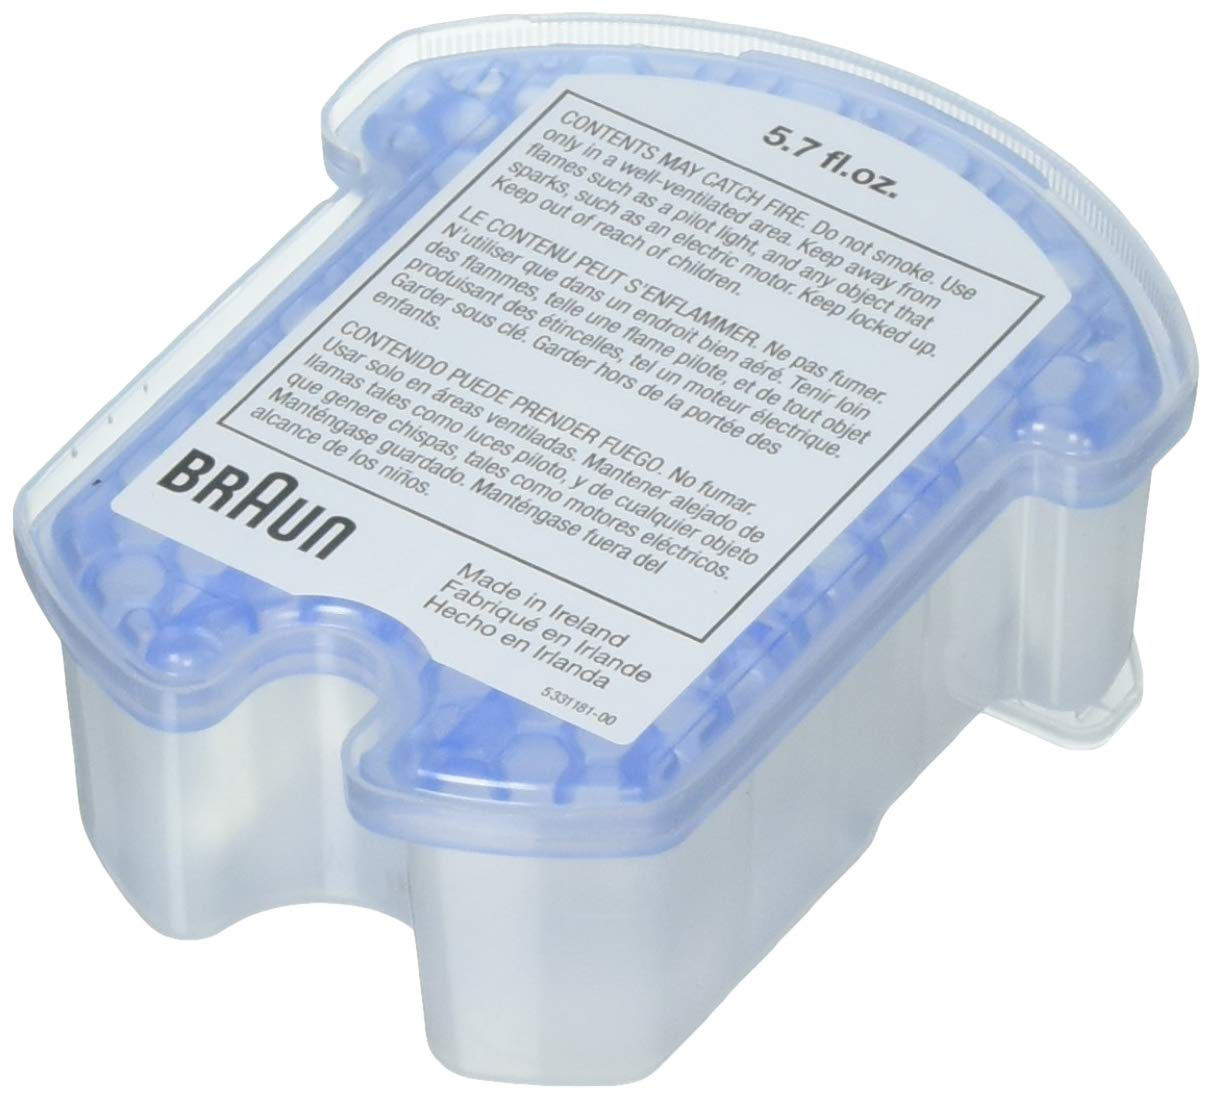 Braun Clean & Renew Cartridges (12 pack) Braun/Oral-B Div. Of P&G